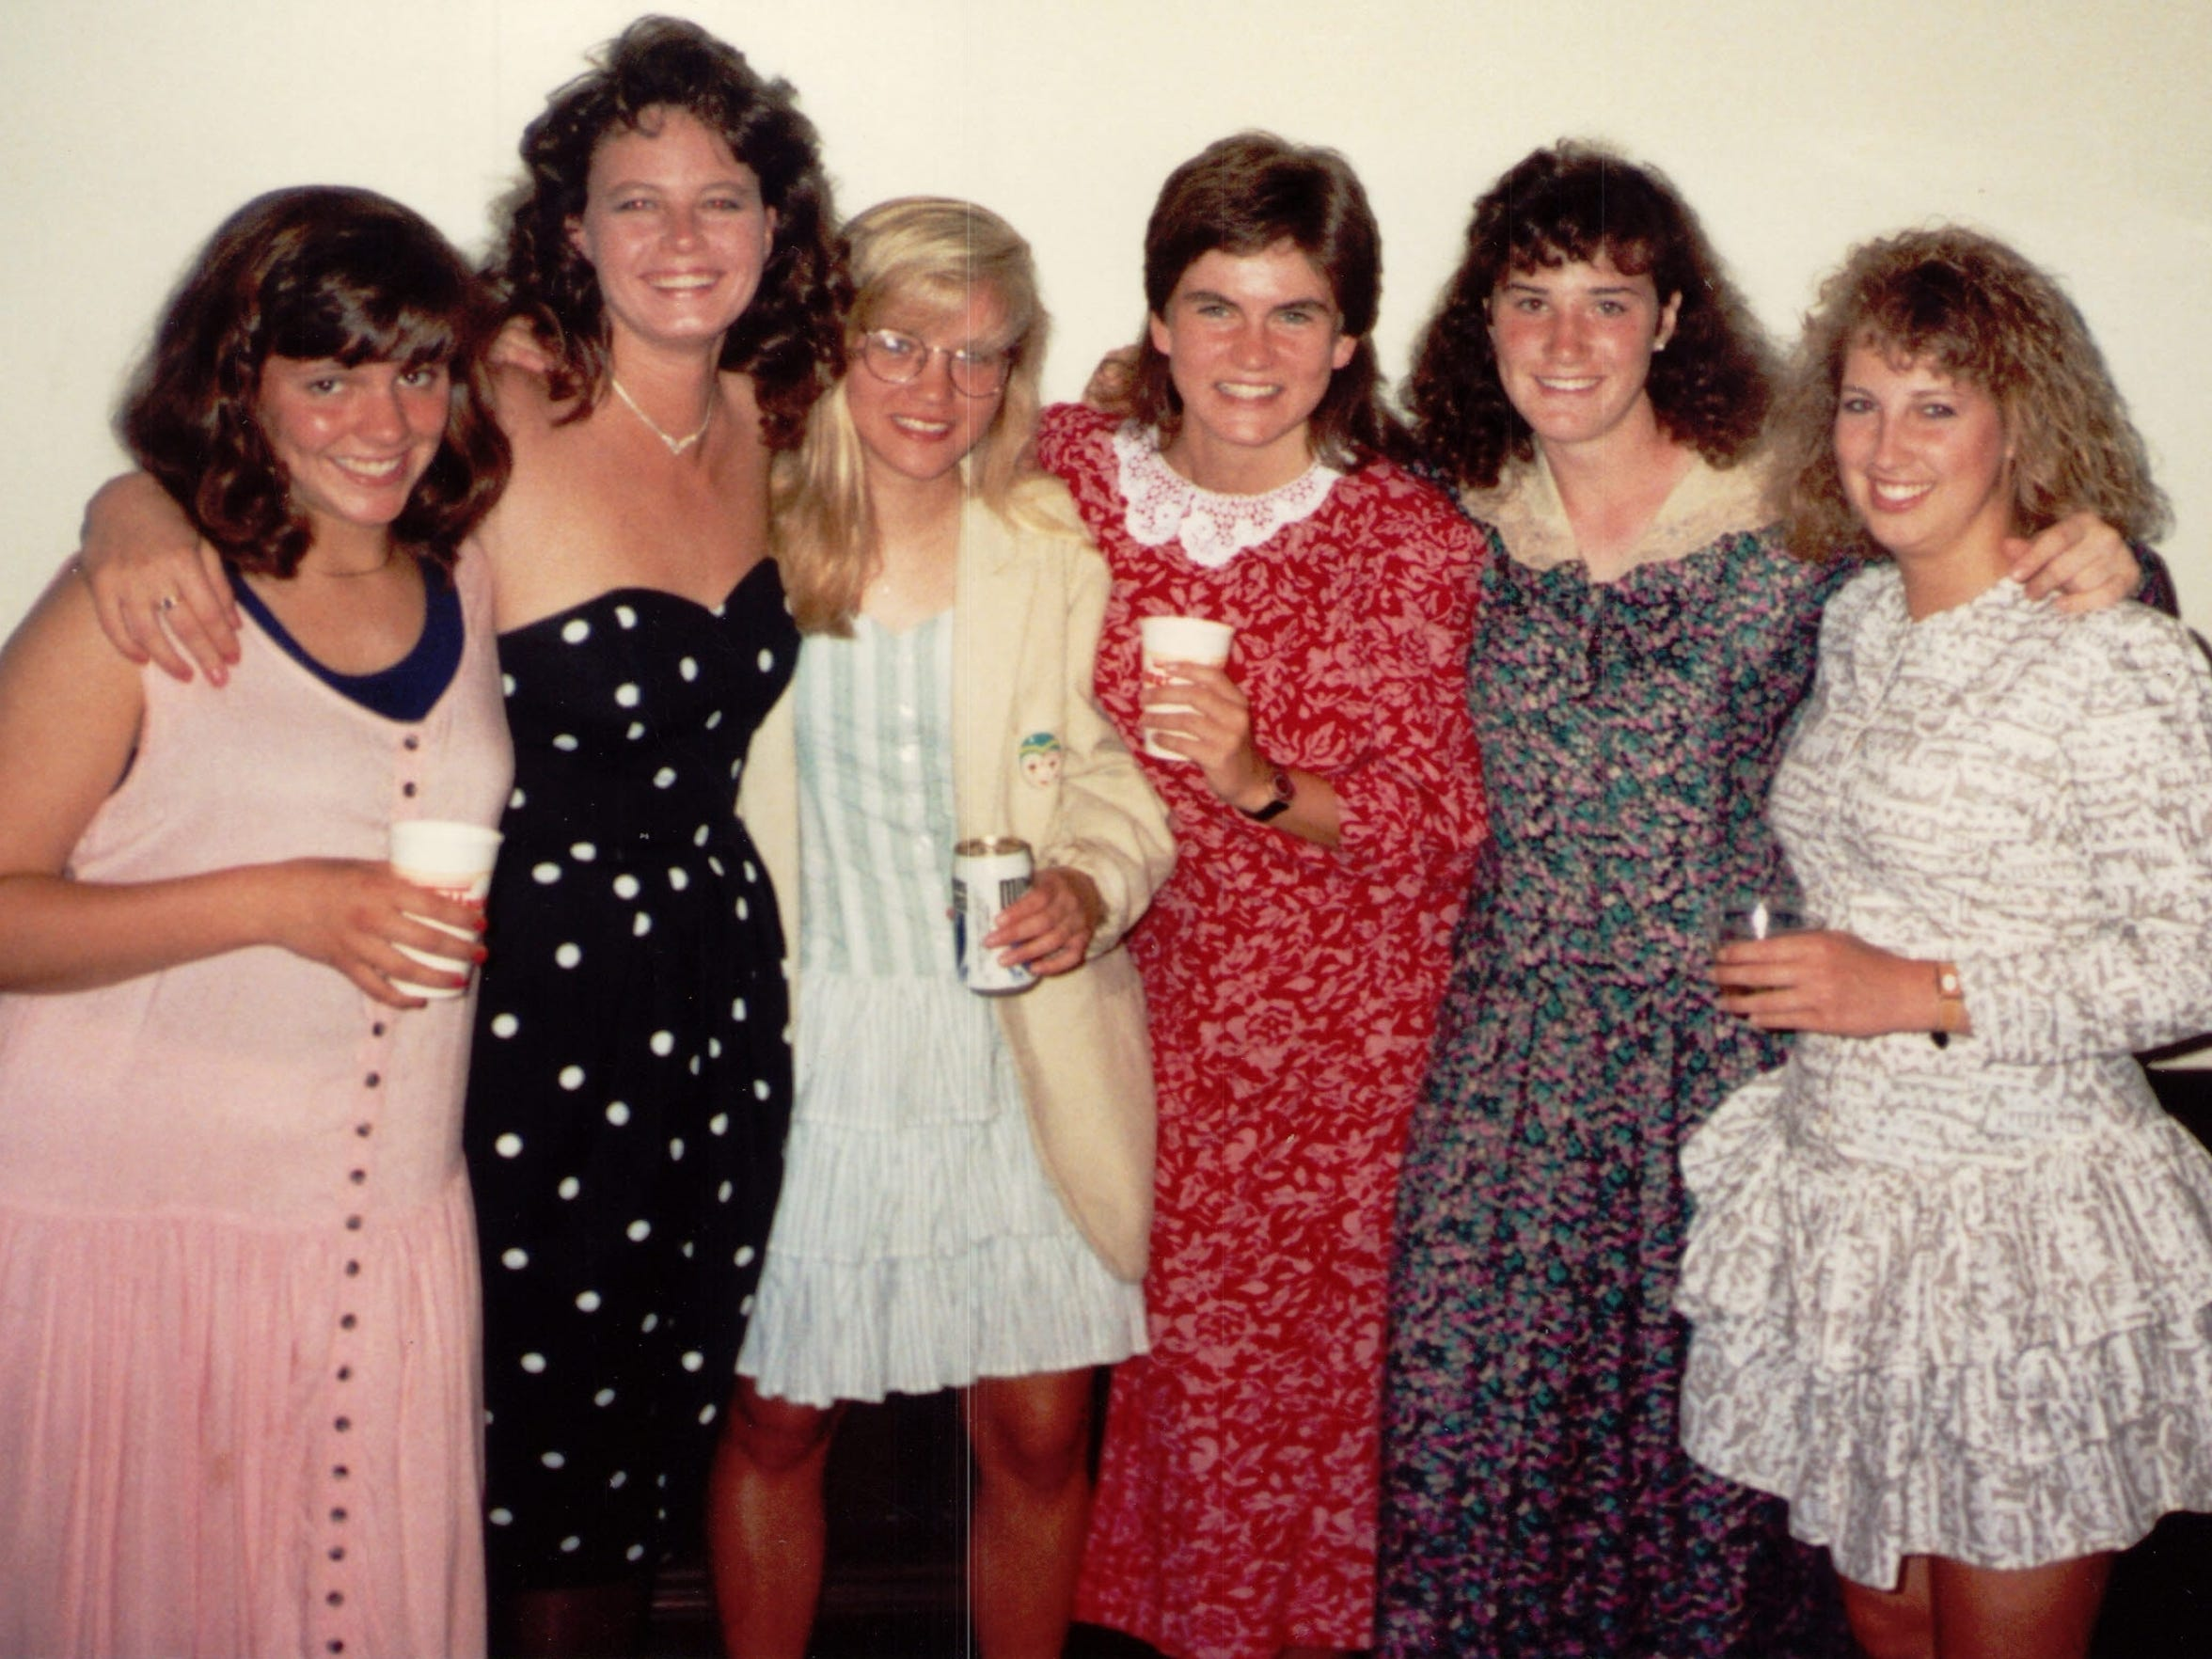 Tammy Zywicki, third from left, and her friends at